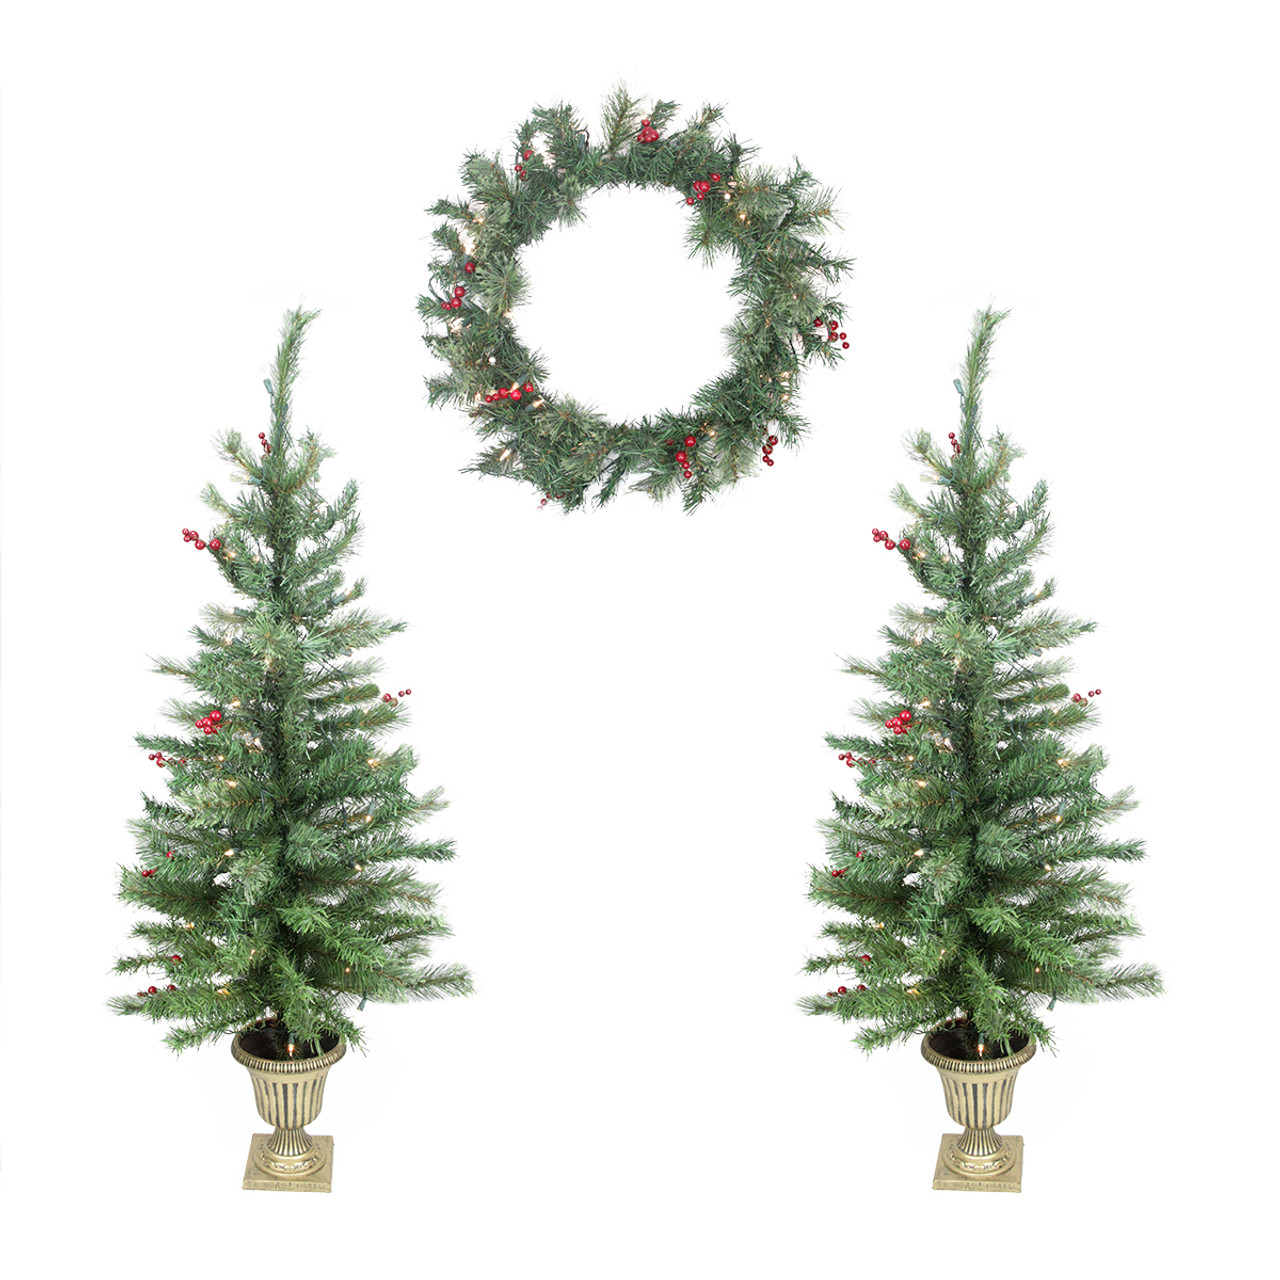 4-Piece Set Of Red Berry Pine Artificial Christmas Trees